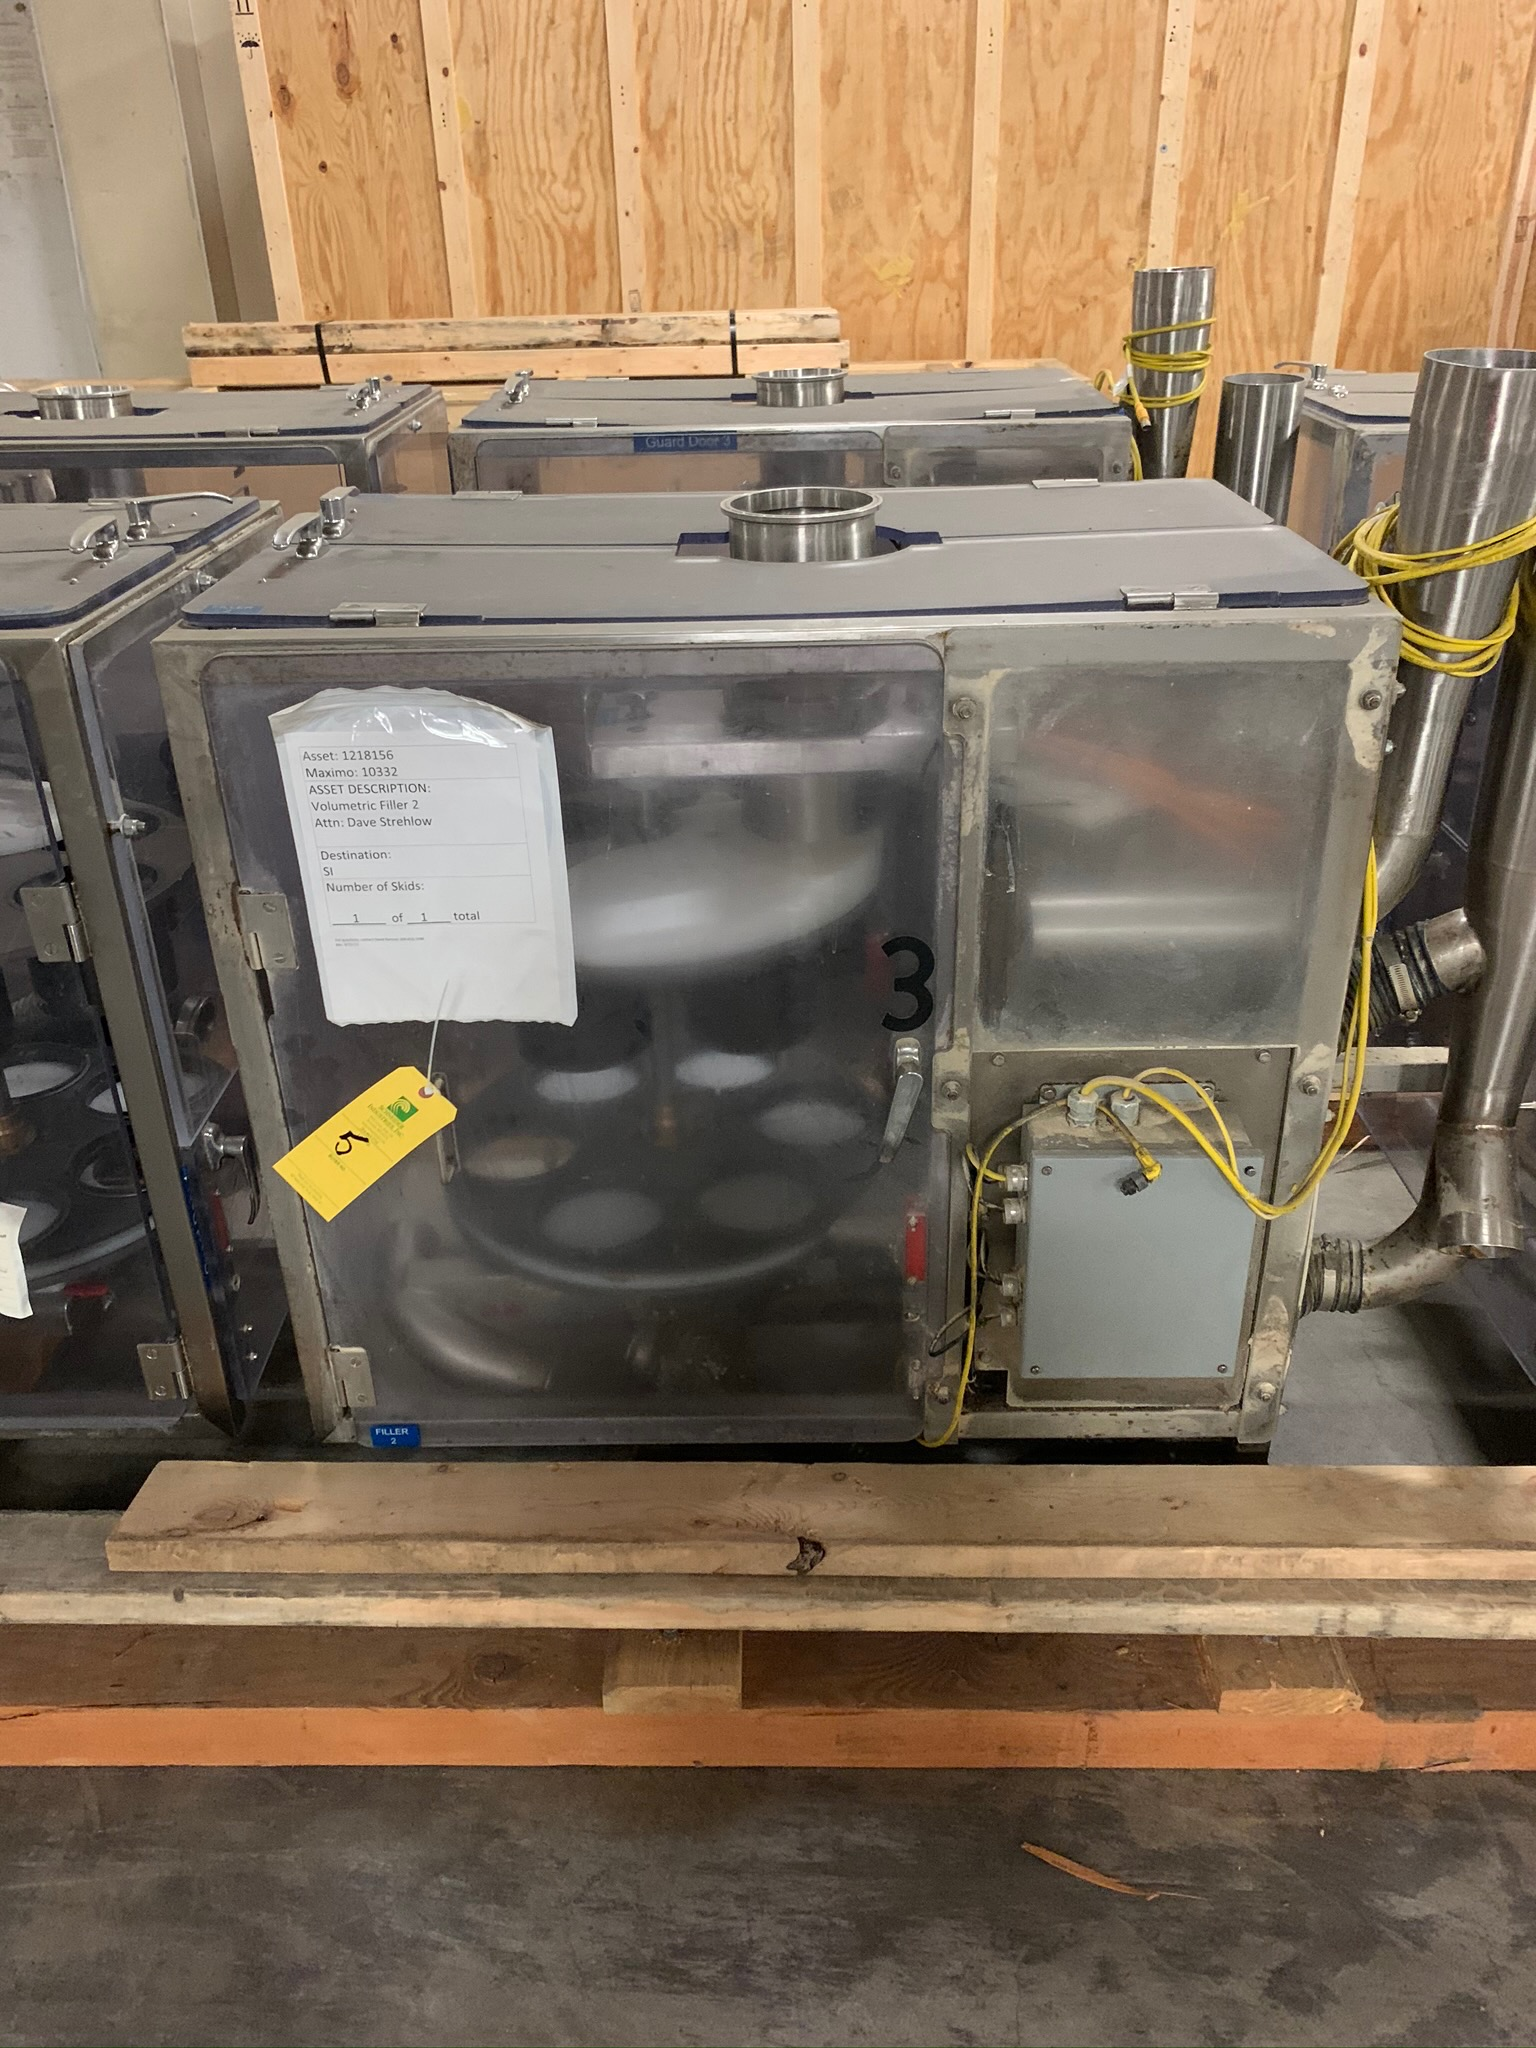 Lot 5 - Lot of (2) Speedee Volumetic Fillers S/N 5925A and 5924B with Surge Hoppers and Control Panel (Riggi